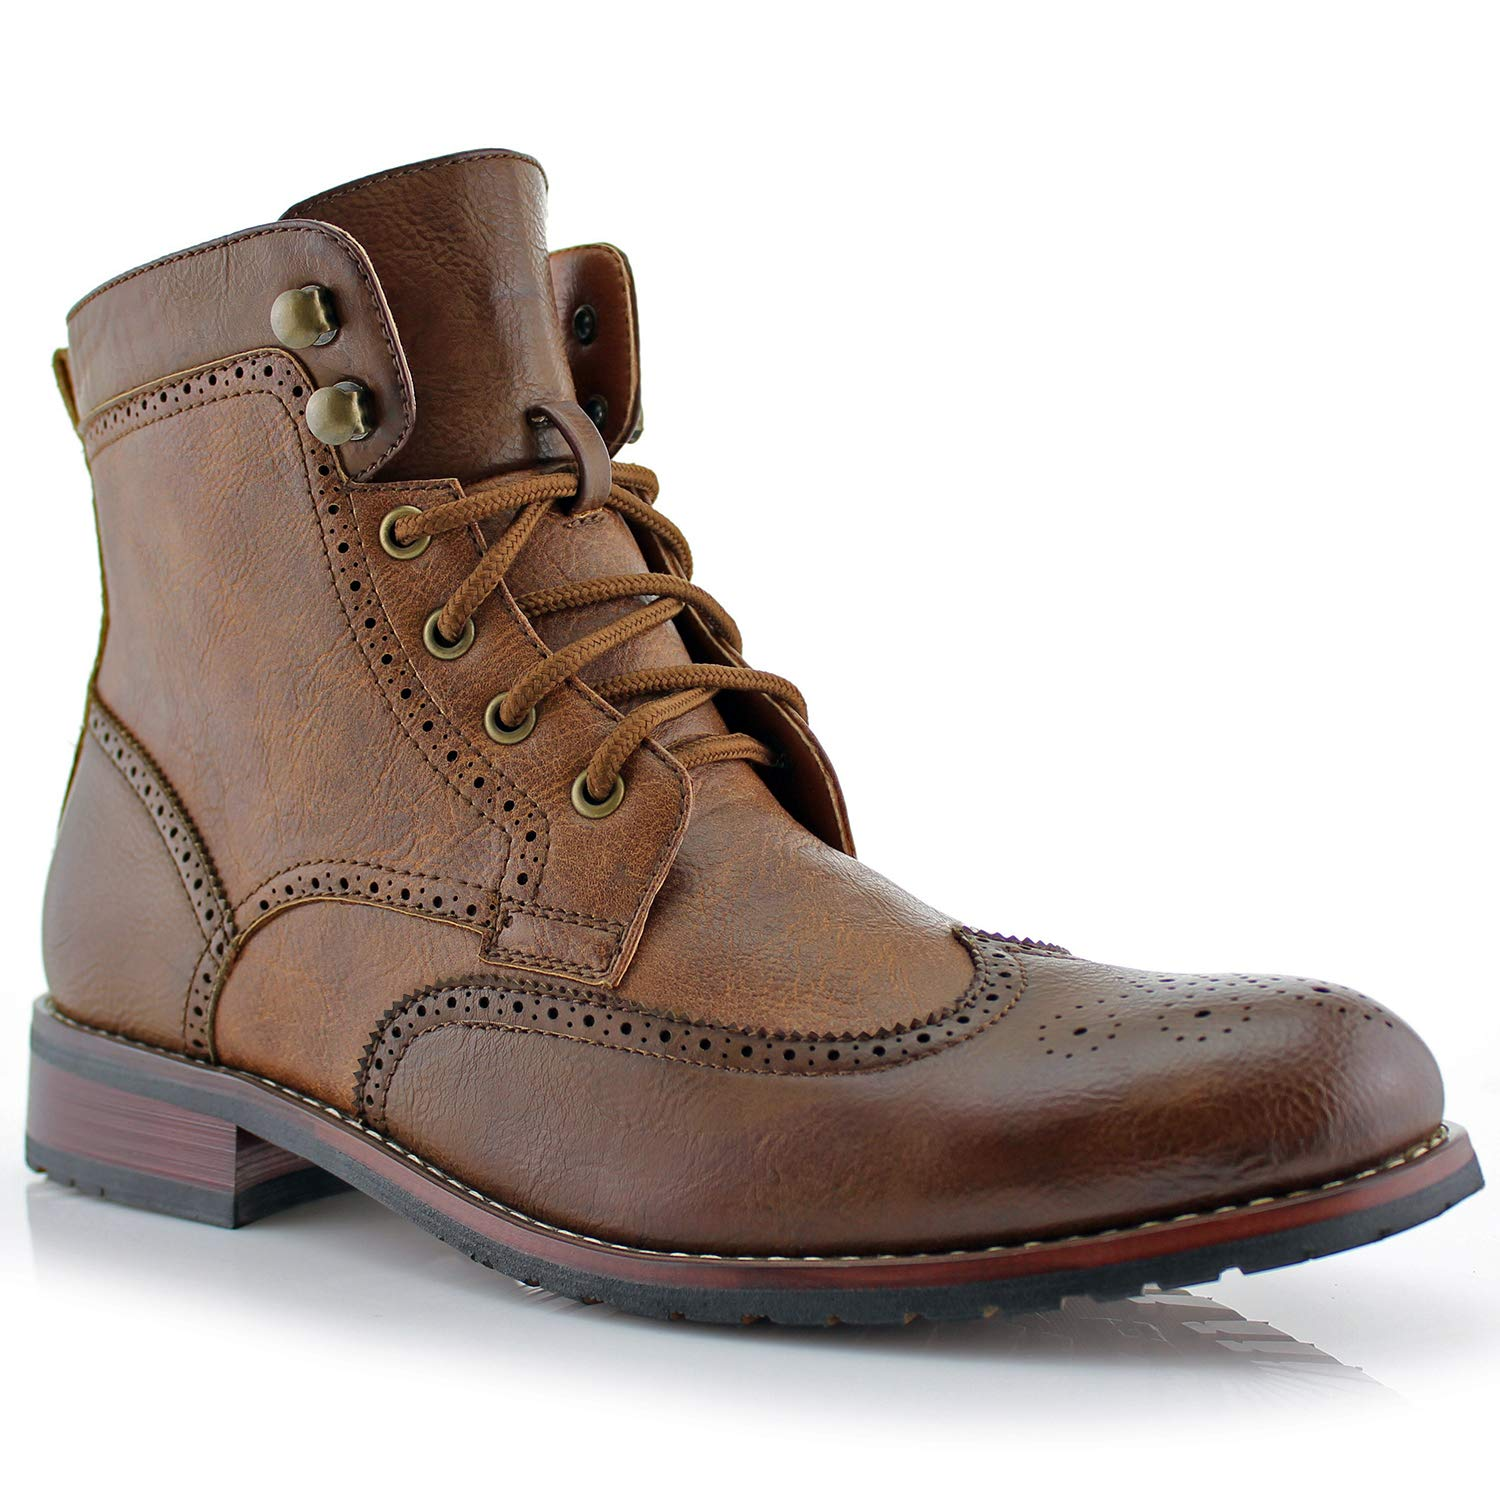 Polar Fox Jonah MPX808567 Men's Ankle Motorcycle Oxford Leather Lined Zipper Brogue Western Derby Dress Boots - Brown, Size 12 by Polar Fox